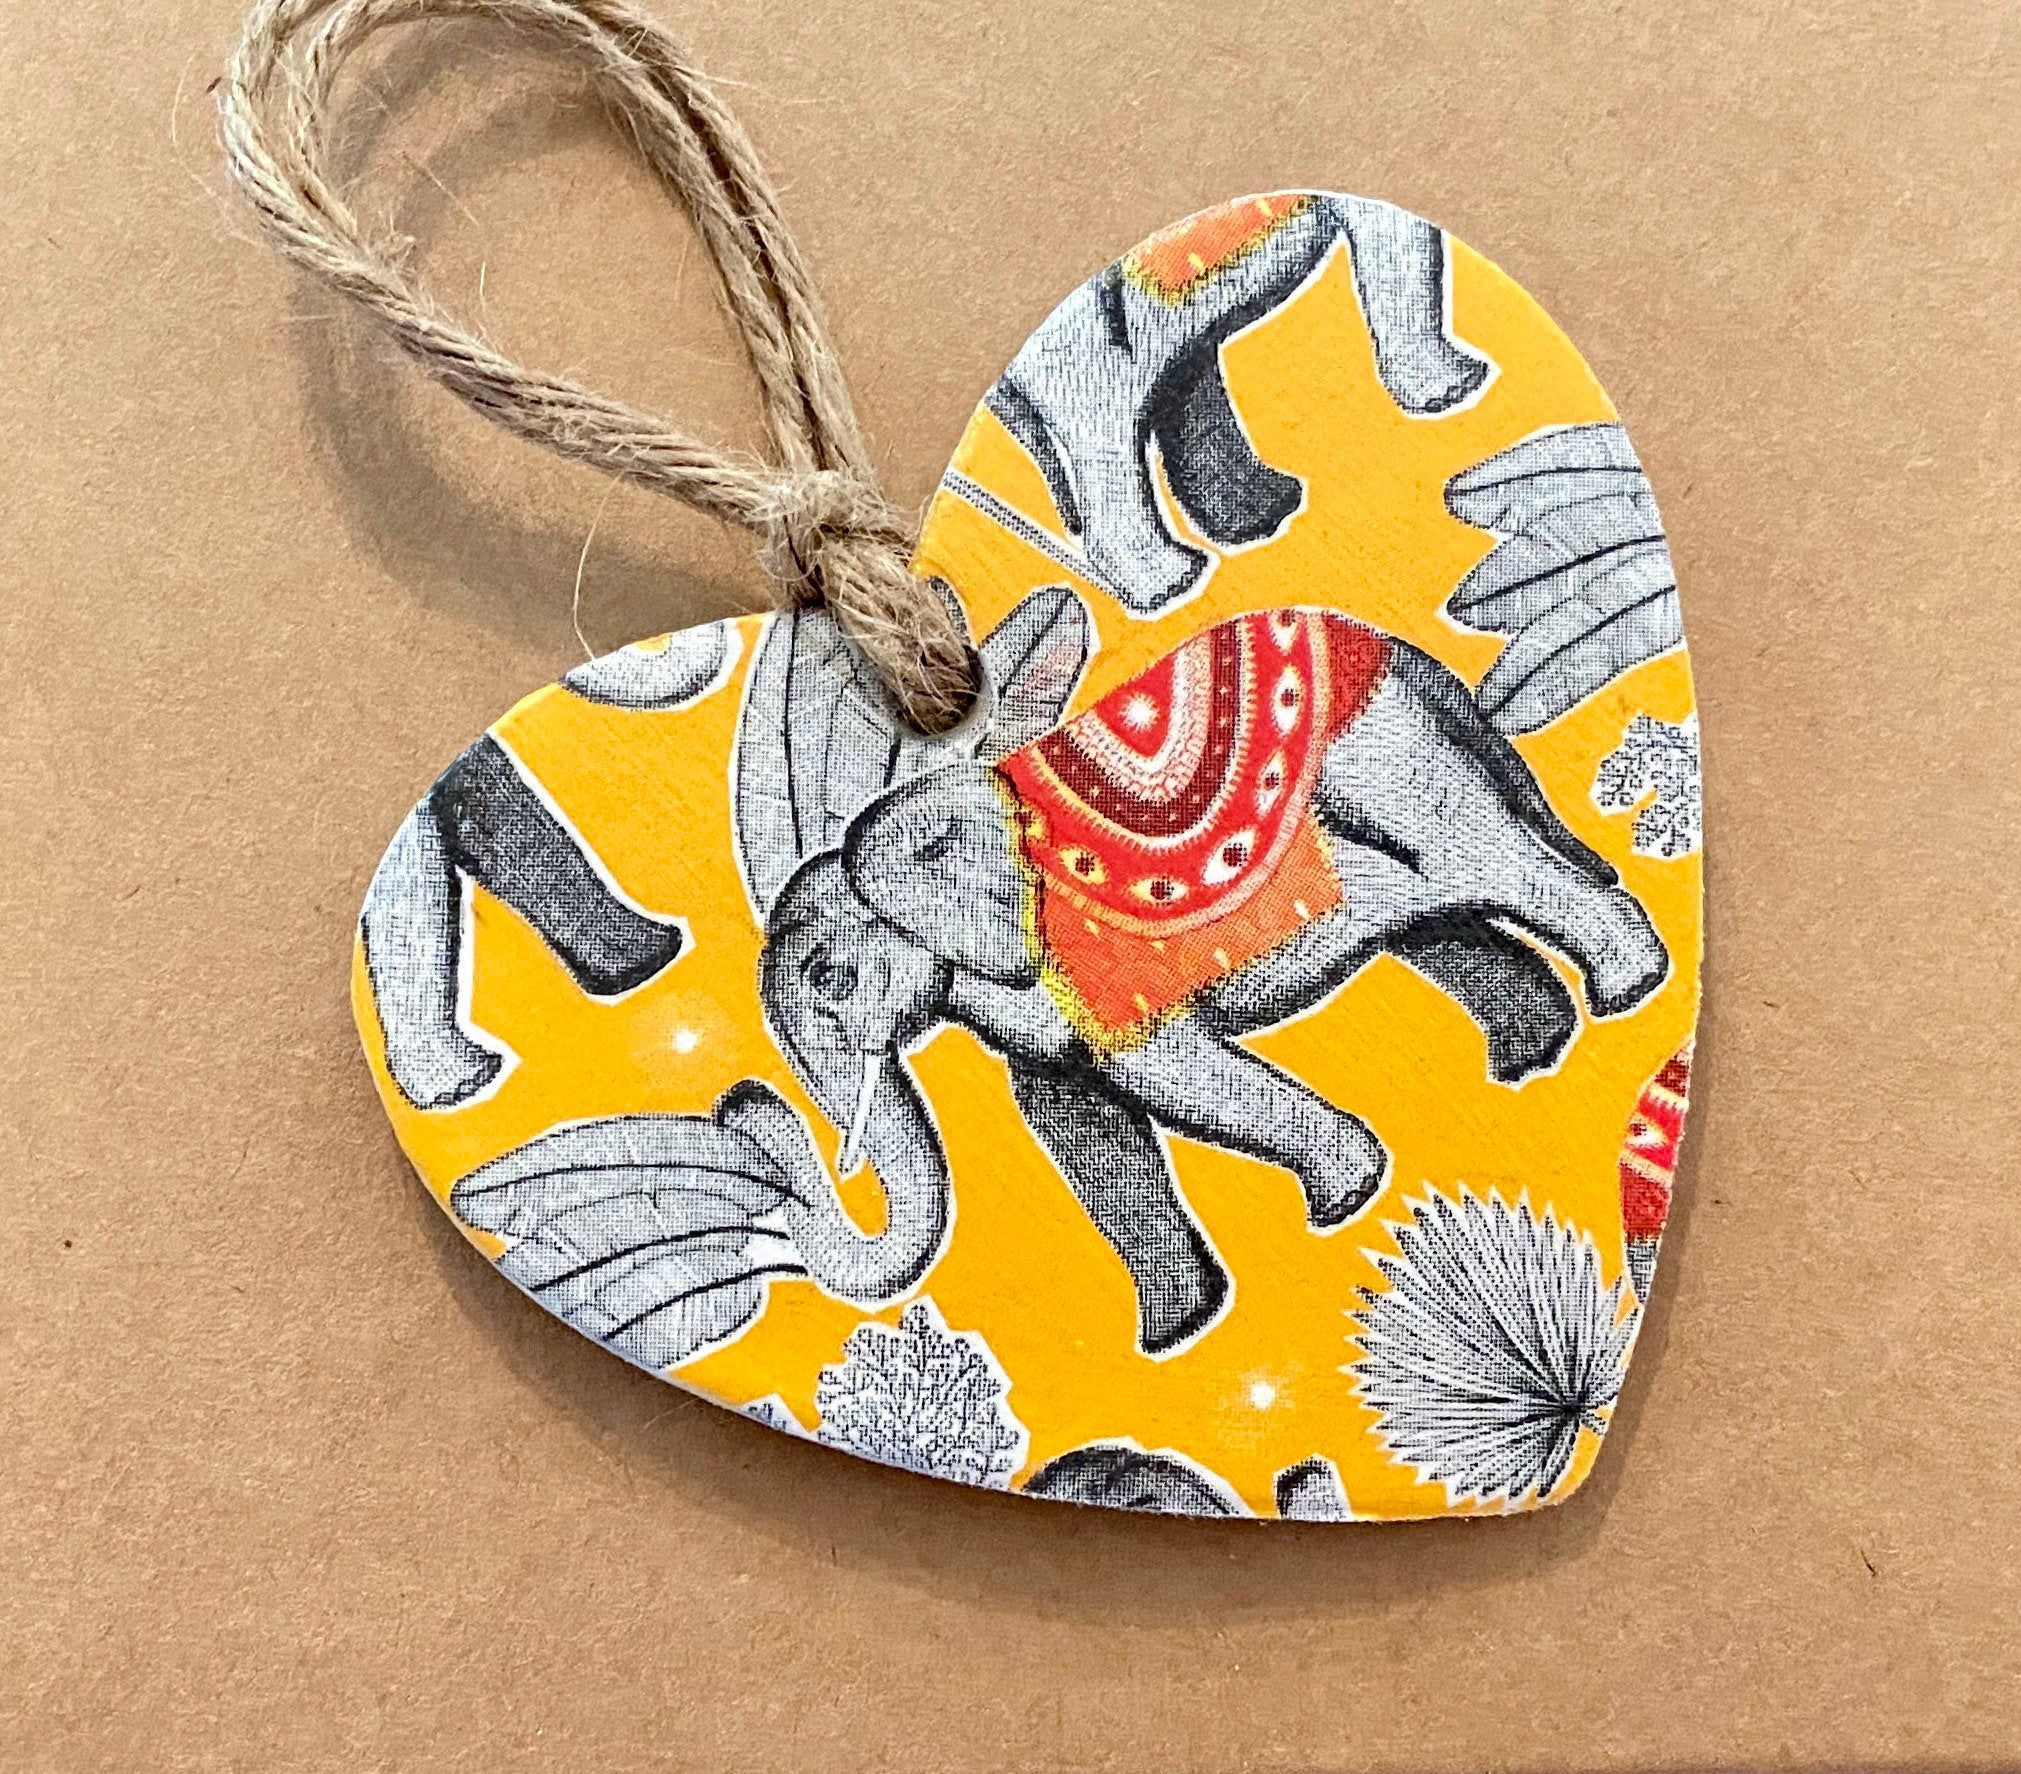 Excited to share this item from my #etsy shop: Mustard Elephants Hanging Heart Decoration (8x8cm's) #elephants #mustard #heart #walldecor #hangingdecoration #handmade #gift